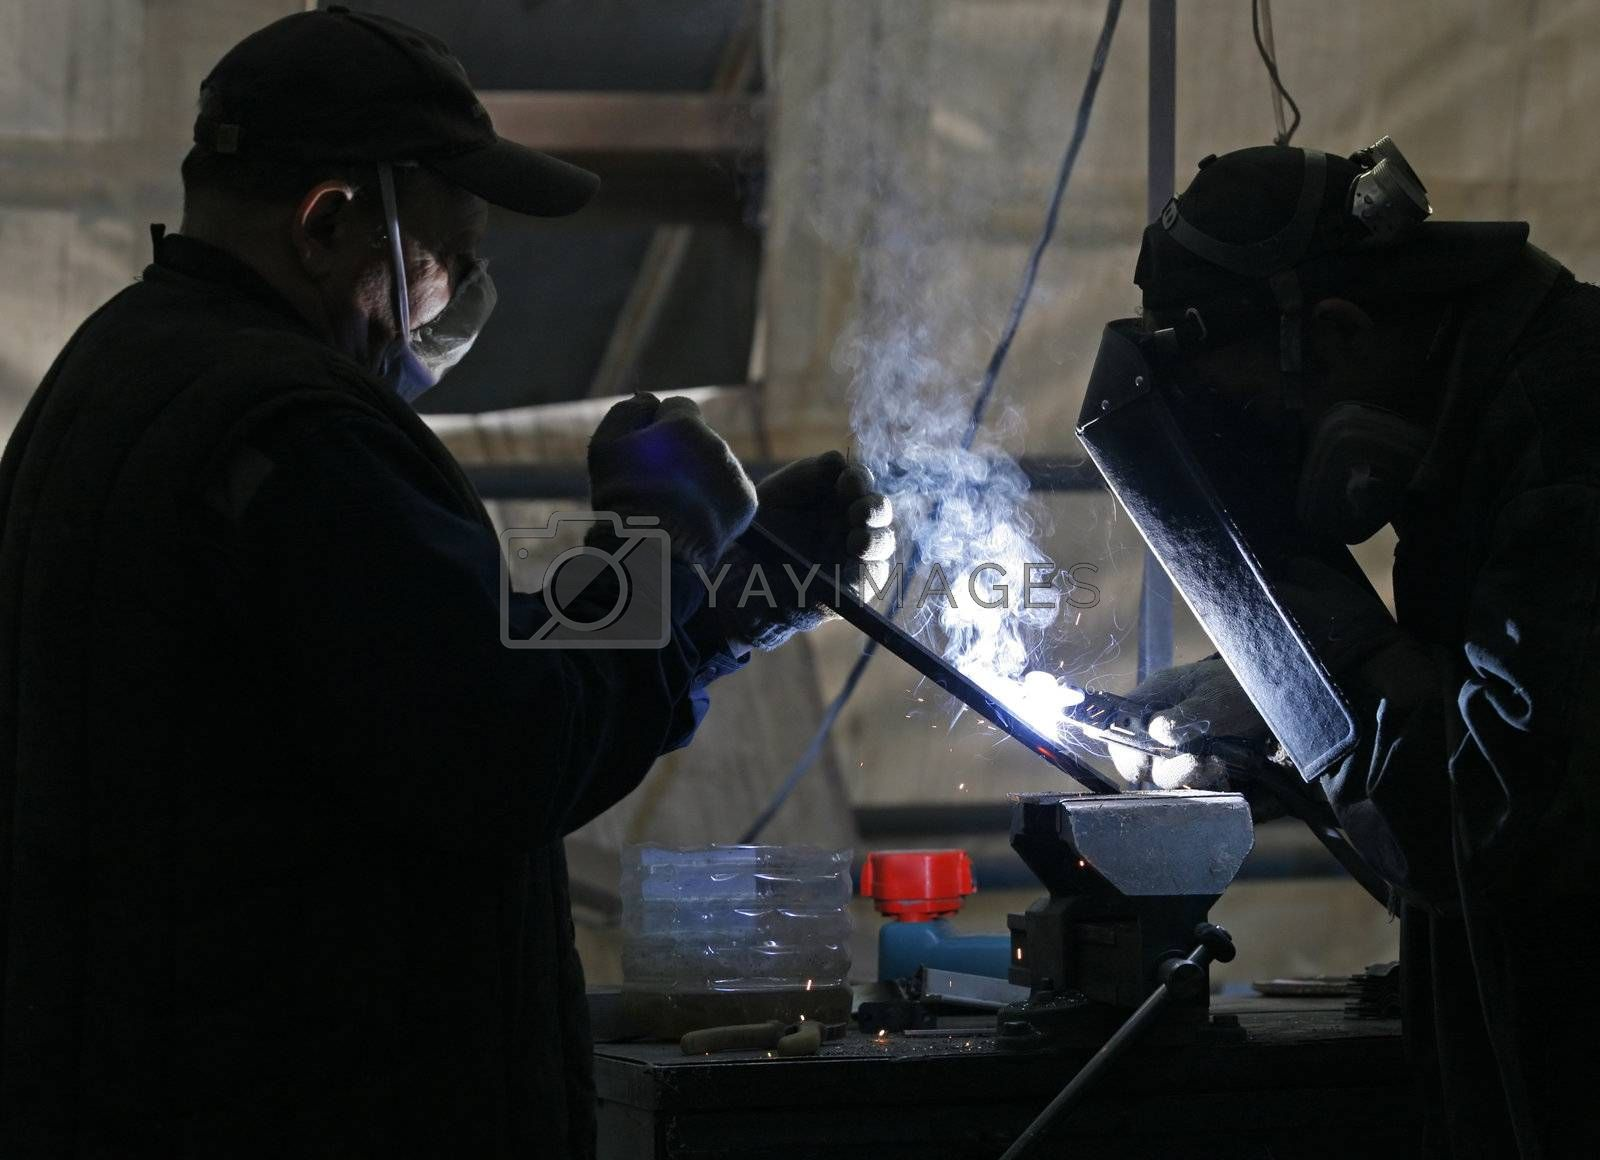 Workers welding metal and sparks spreading